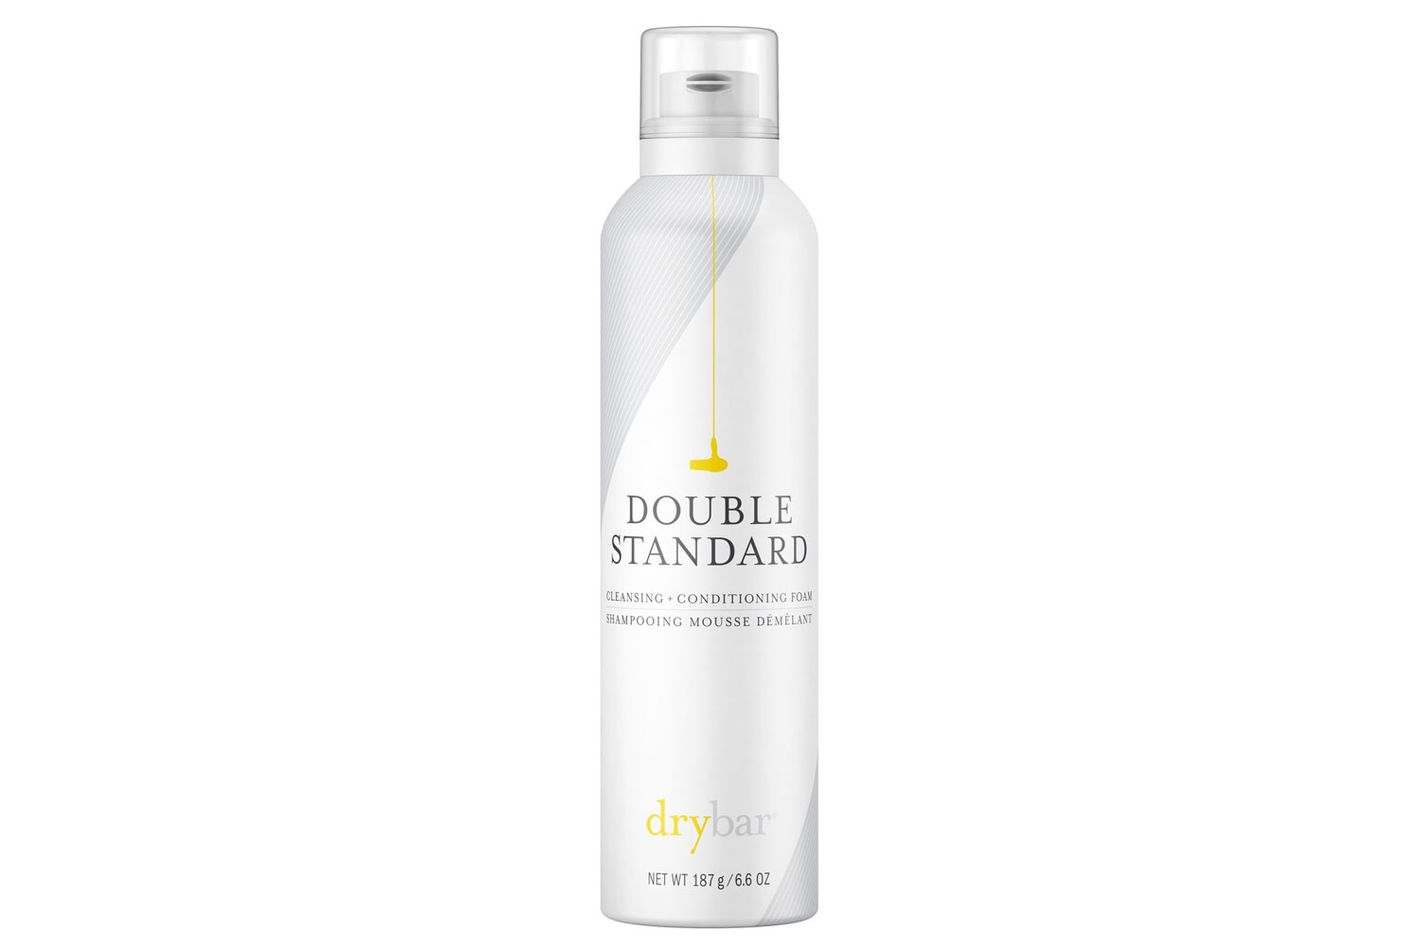 Drybar Double Standard Cleansing & Conditioning Foam